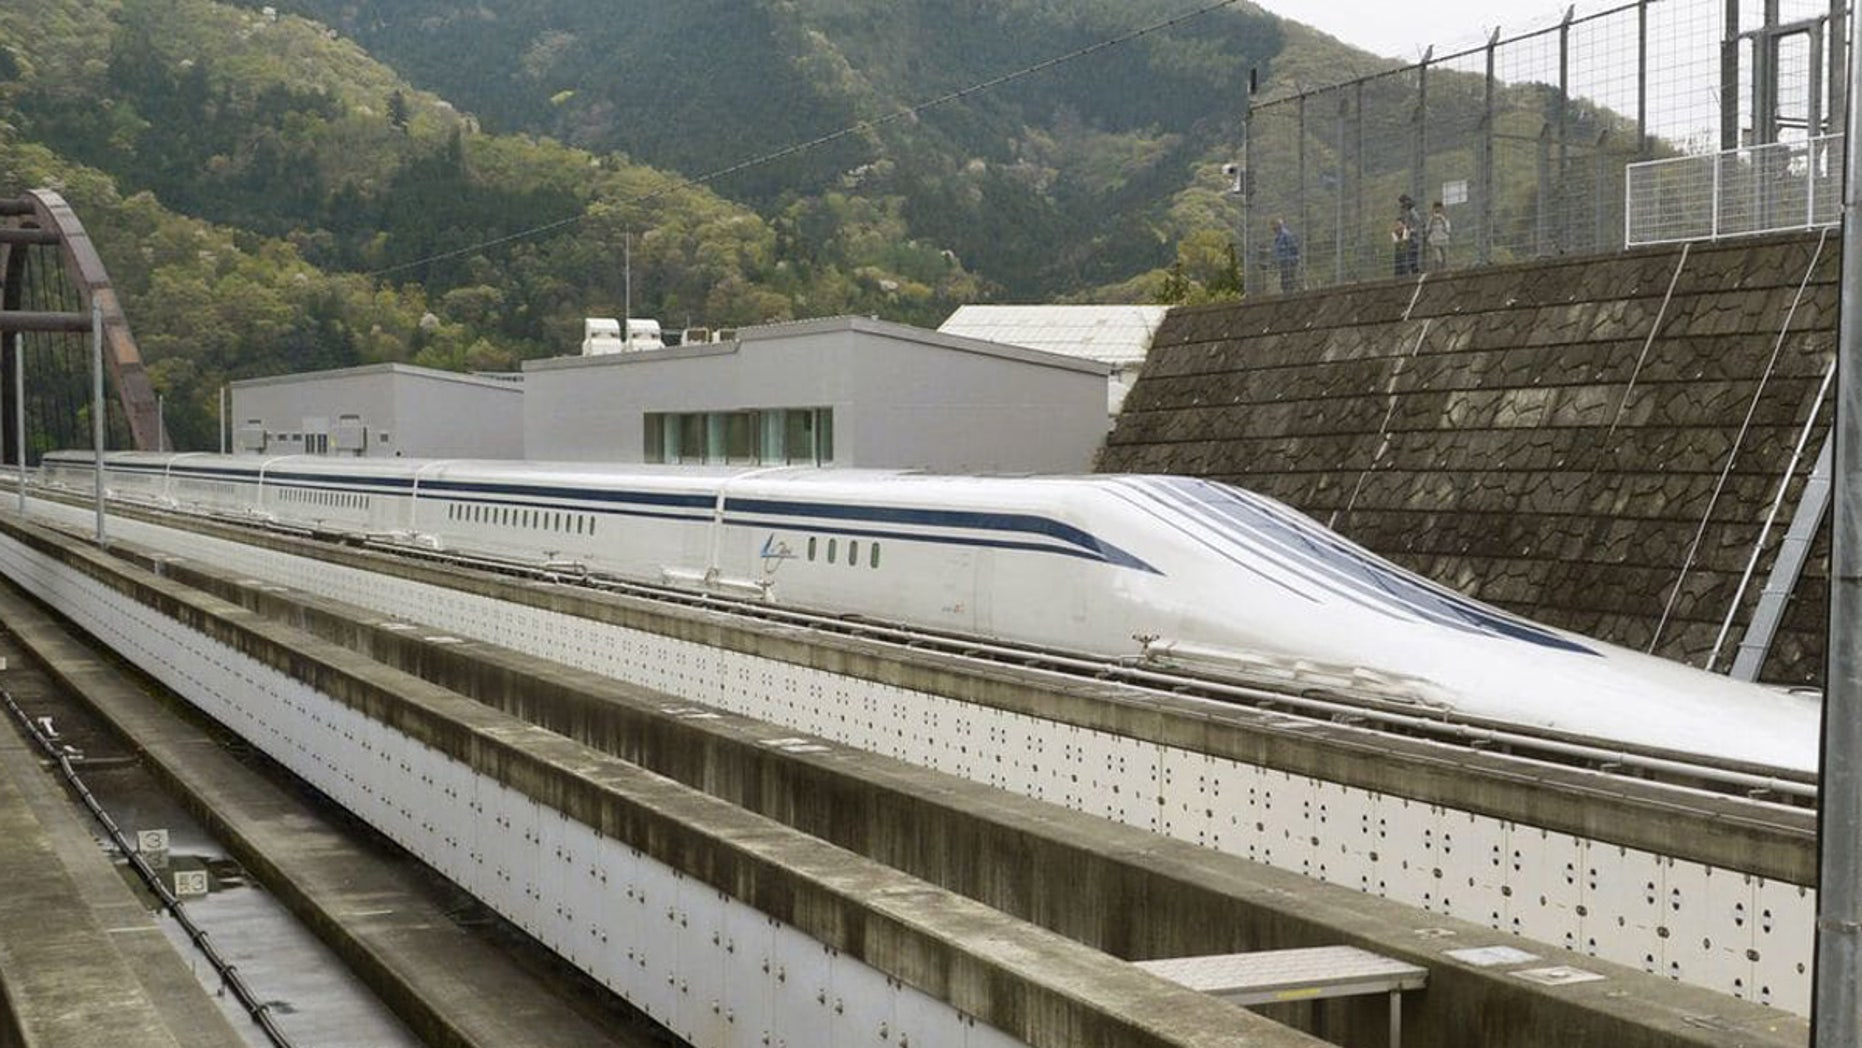 The fastest passenger train in the world runs on the Maglev Test Line in Tsuru, west of Tokyo. Maglev trains could soon connect Washington to Baltimore and eventually New York.